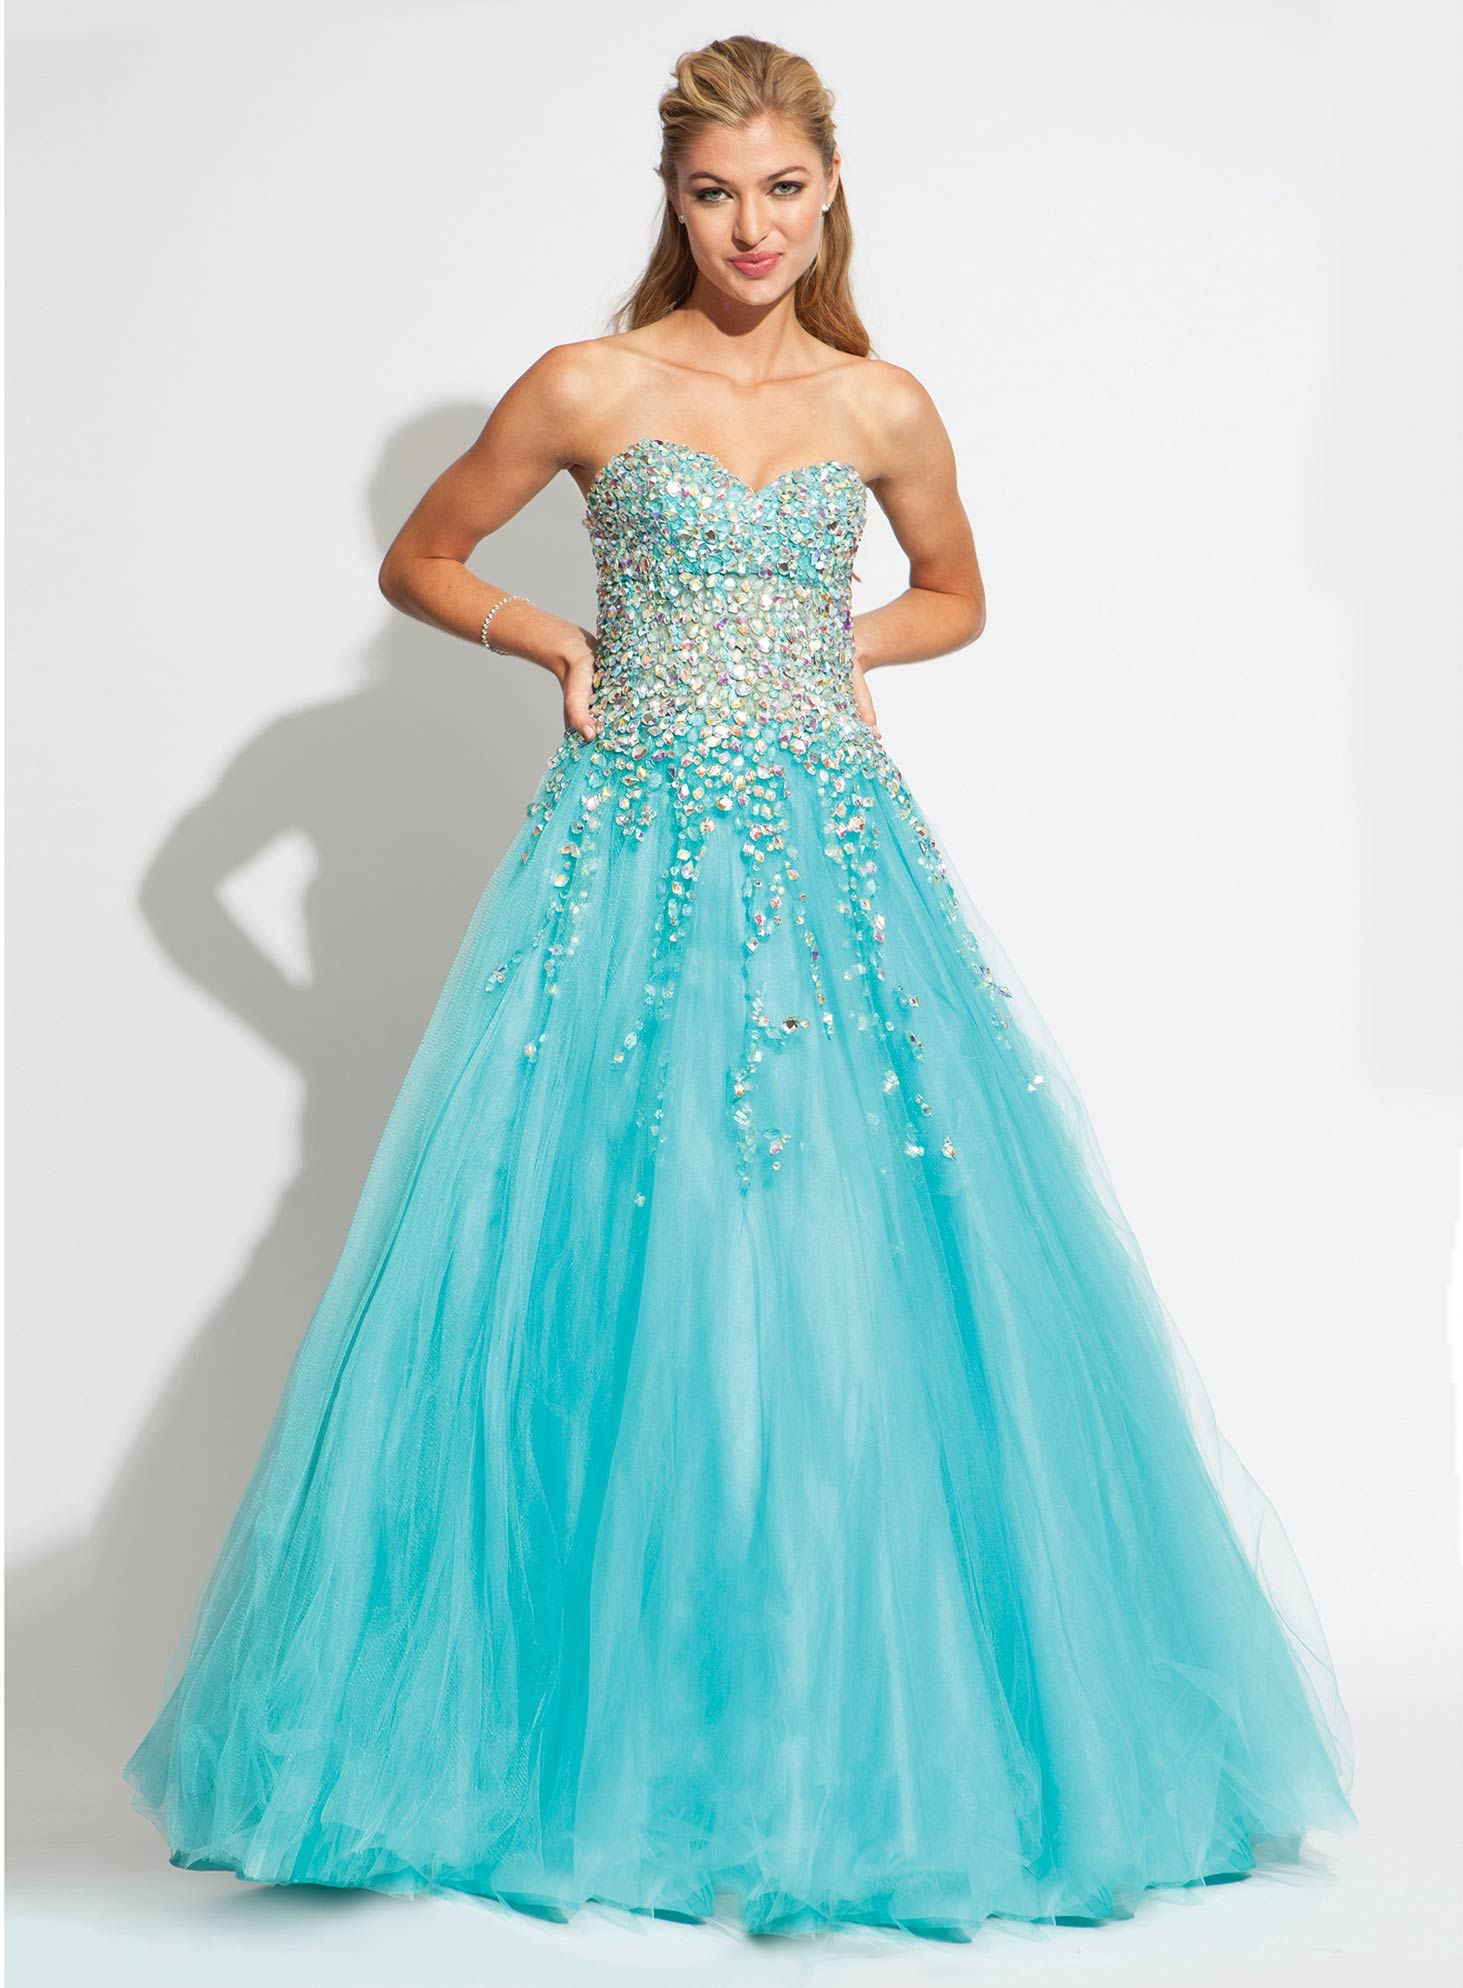 I love it would were it to my prom | Beauty and Style | Pinterest ...